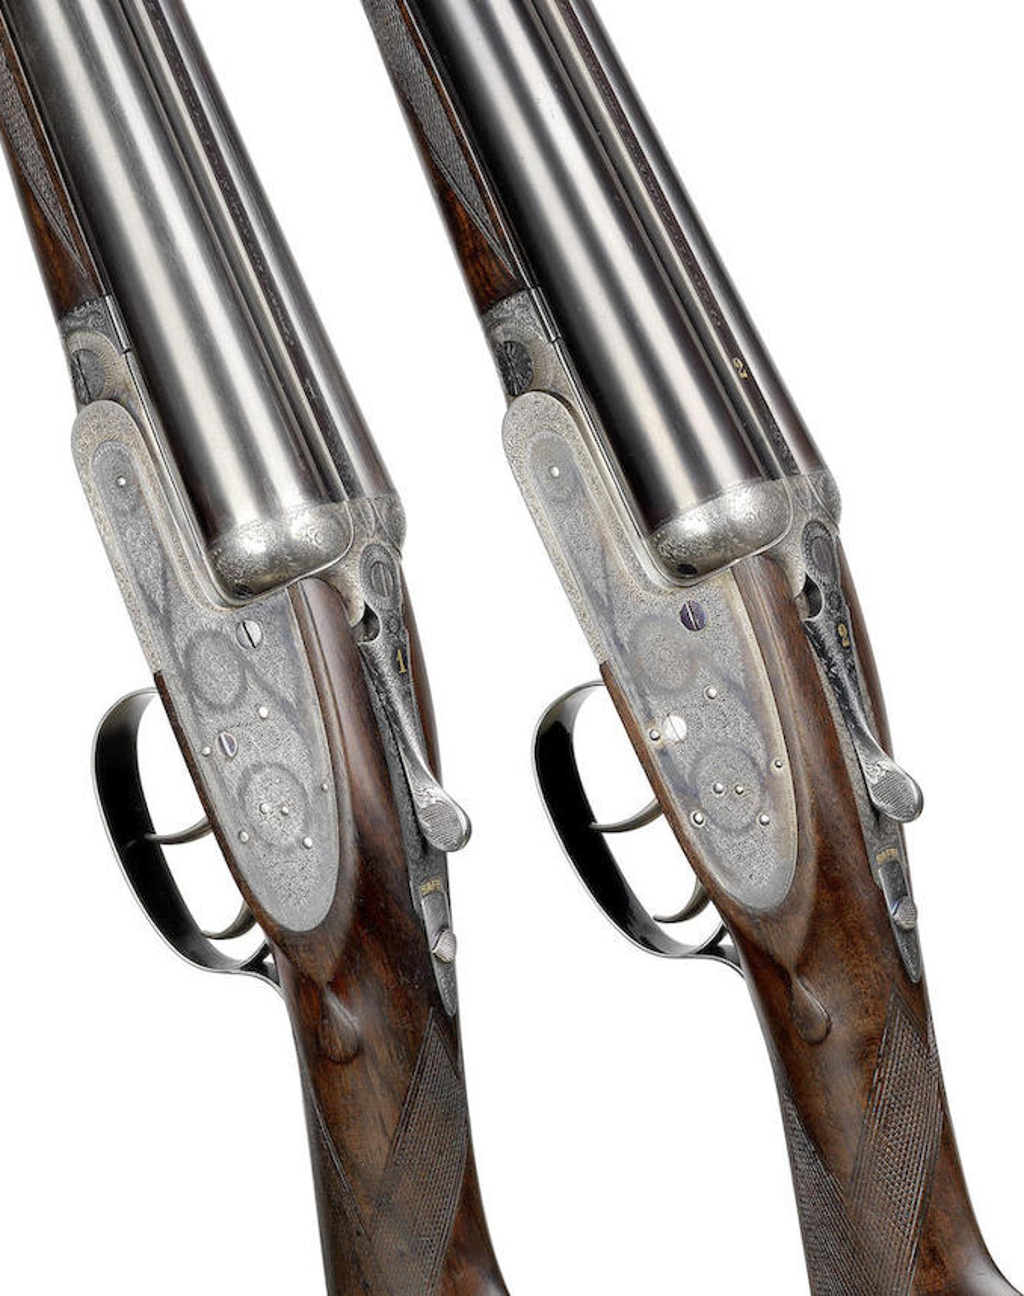 A fine pair of 12-bore self-opening sidelock ejector guns by J. Purdey & Sons, no. 25584-5